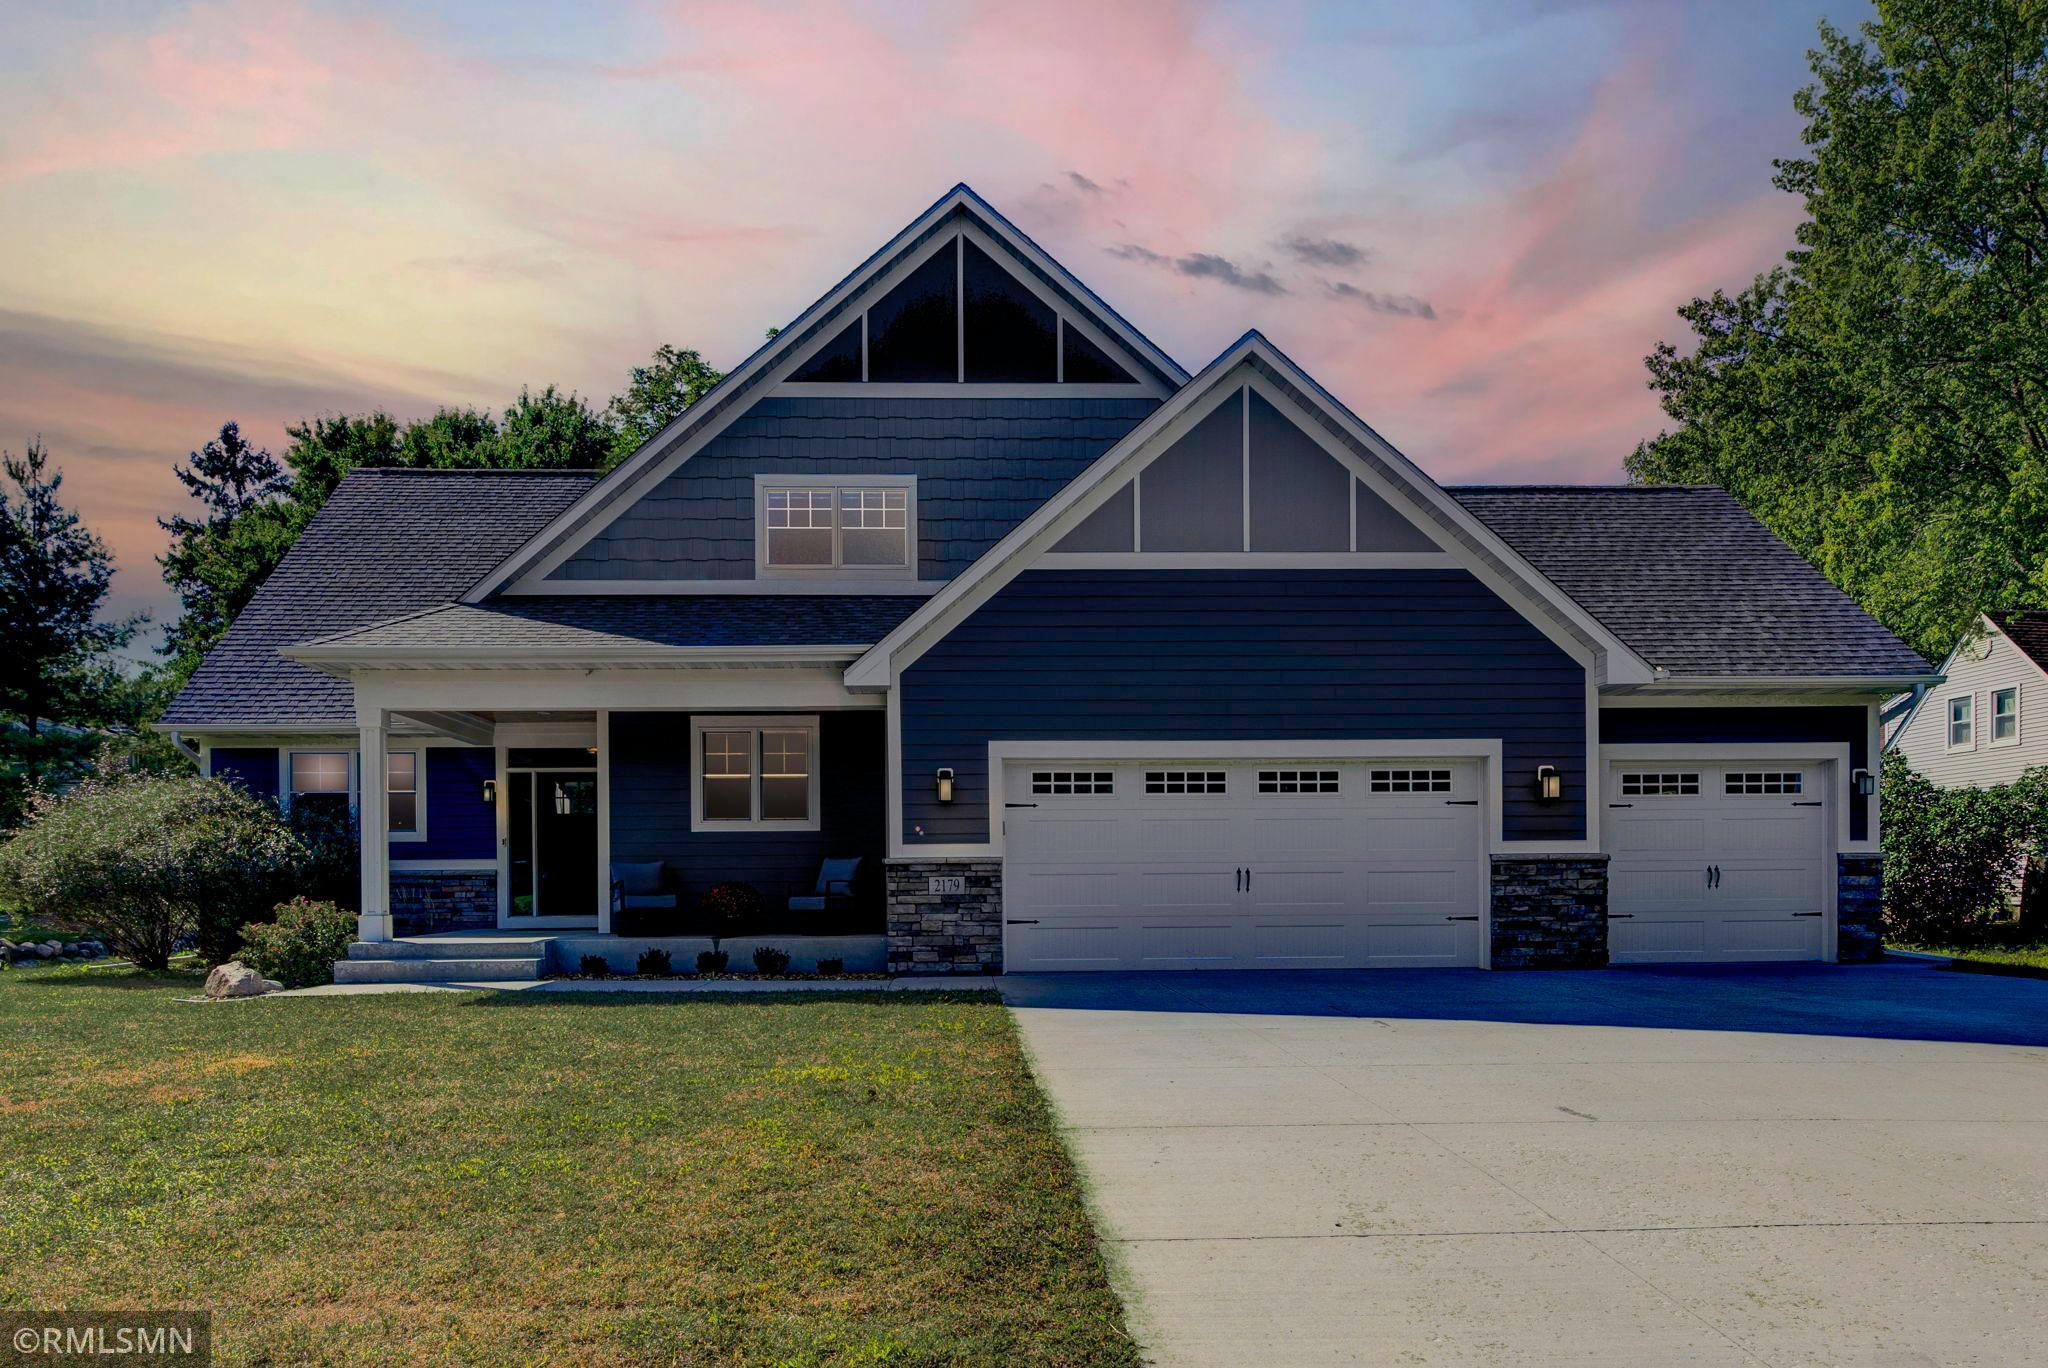 Photo of 2179 Marion Road, Roseville, MN 55113